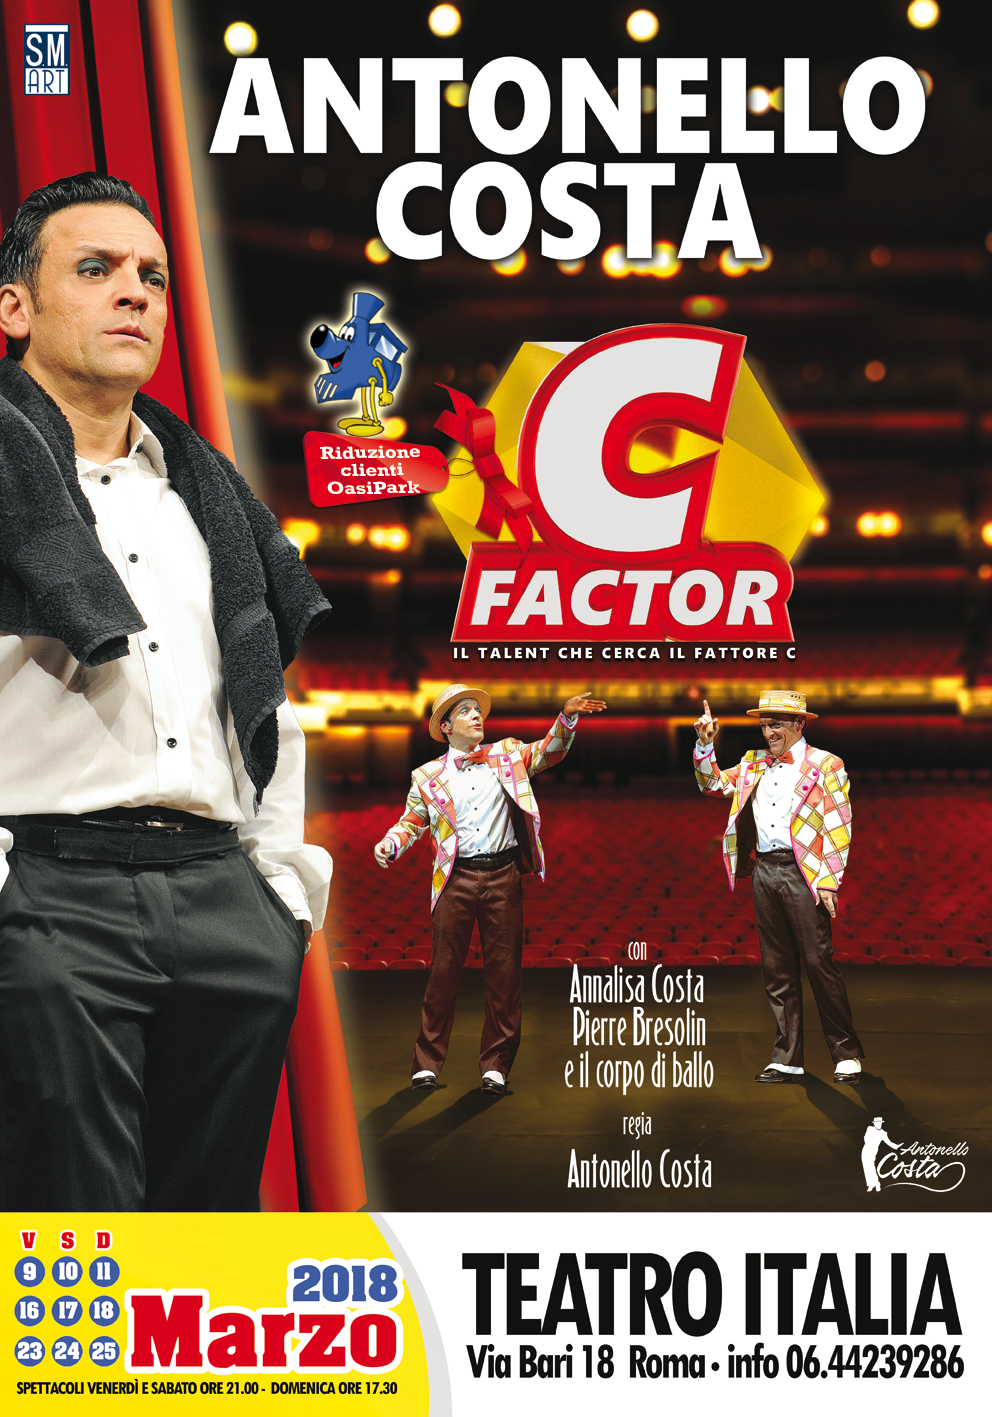 Antonello Costa C Factor